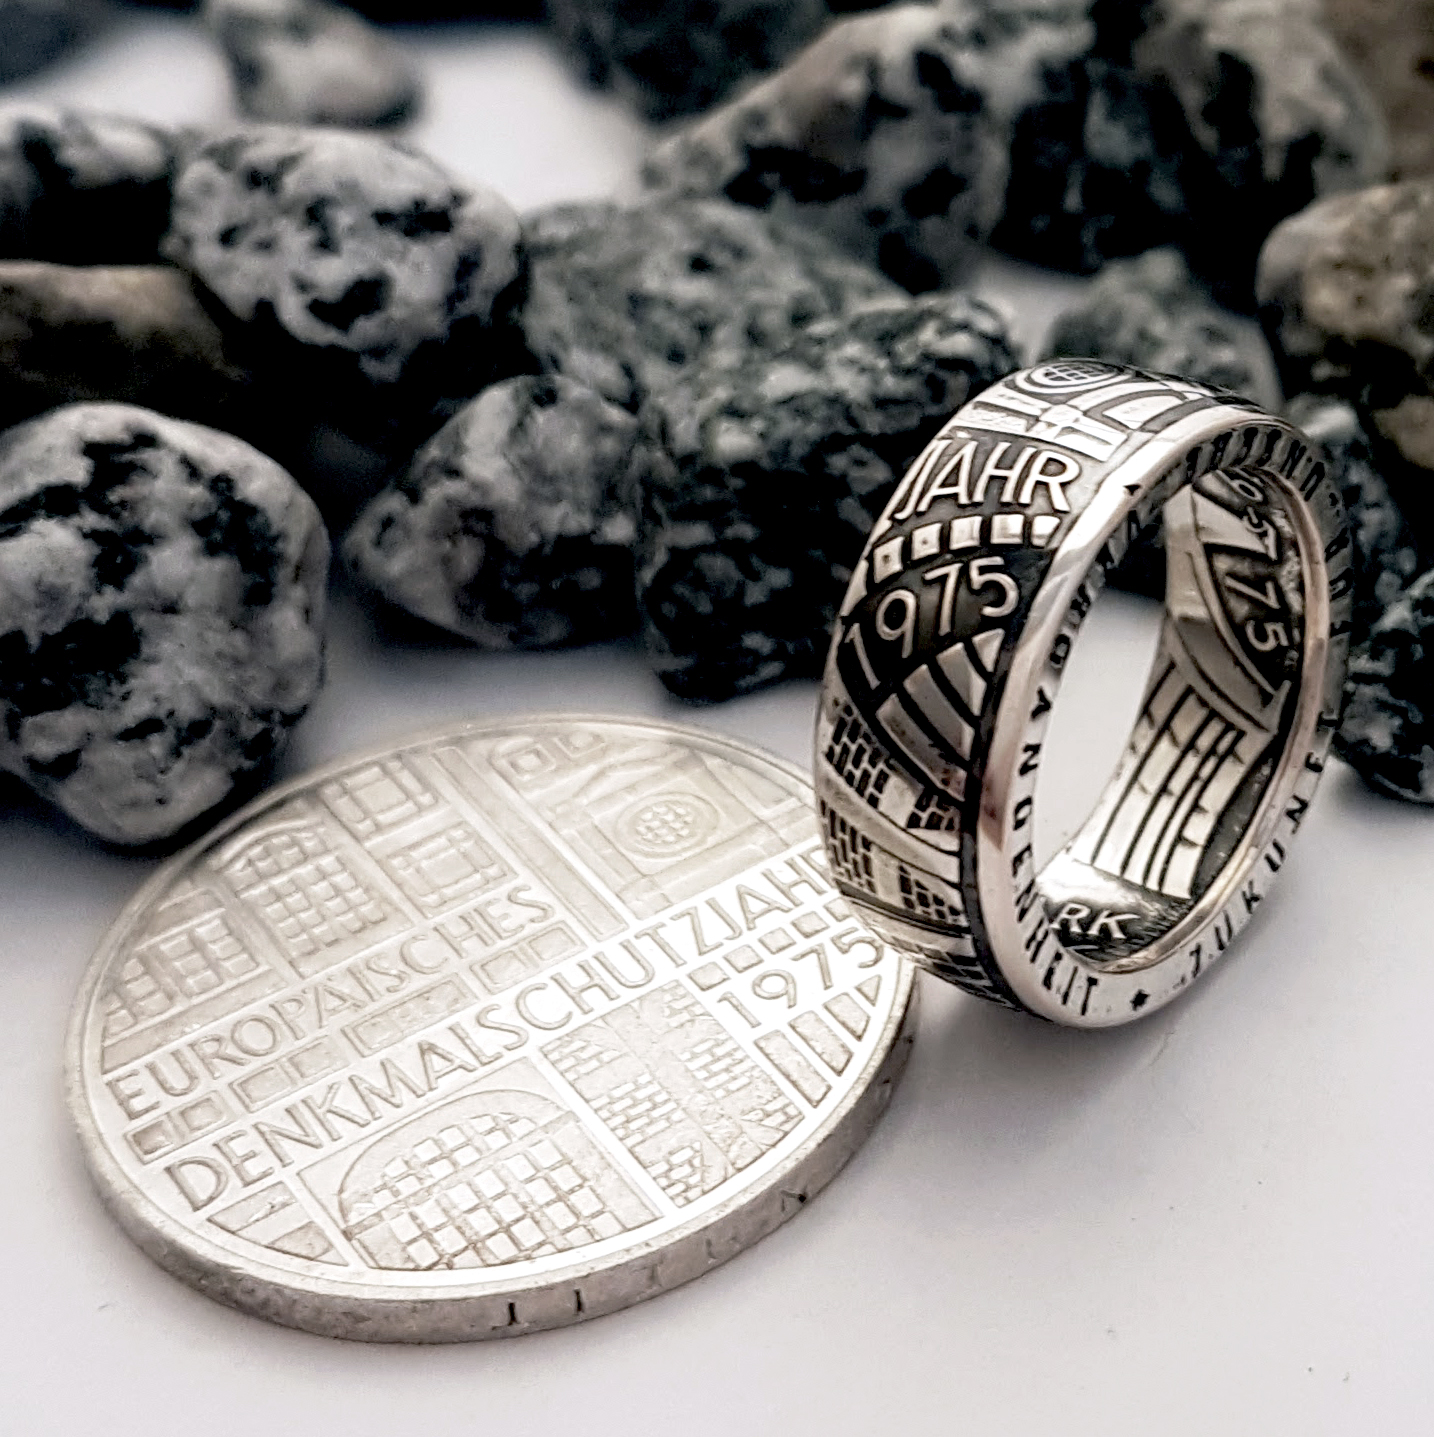 A German coin made into a ring by Celtic Coin Crafts